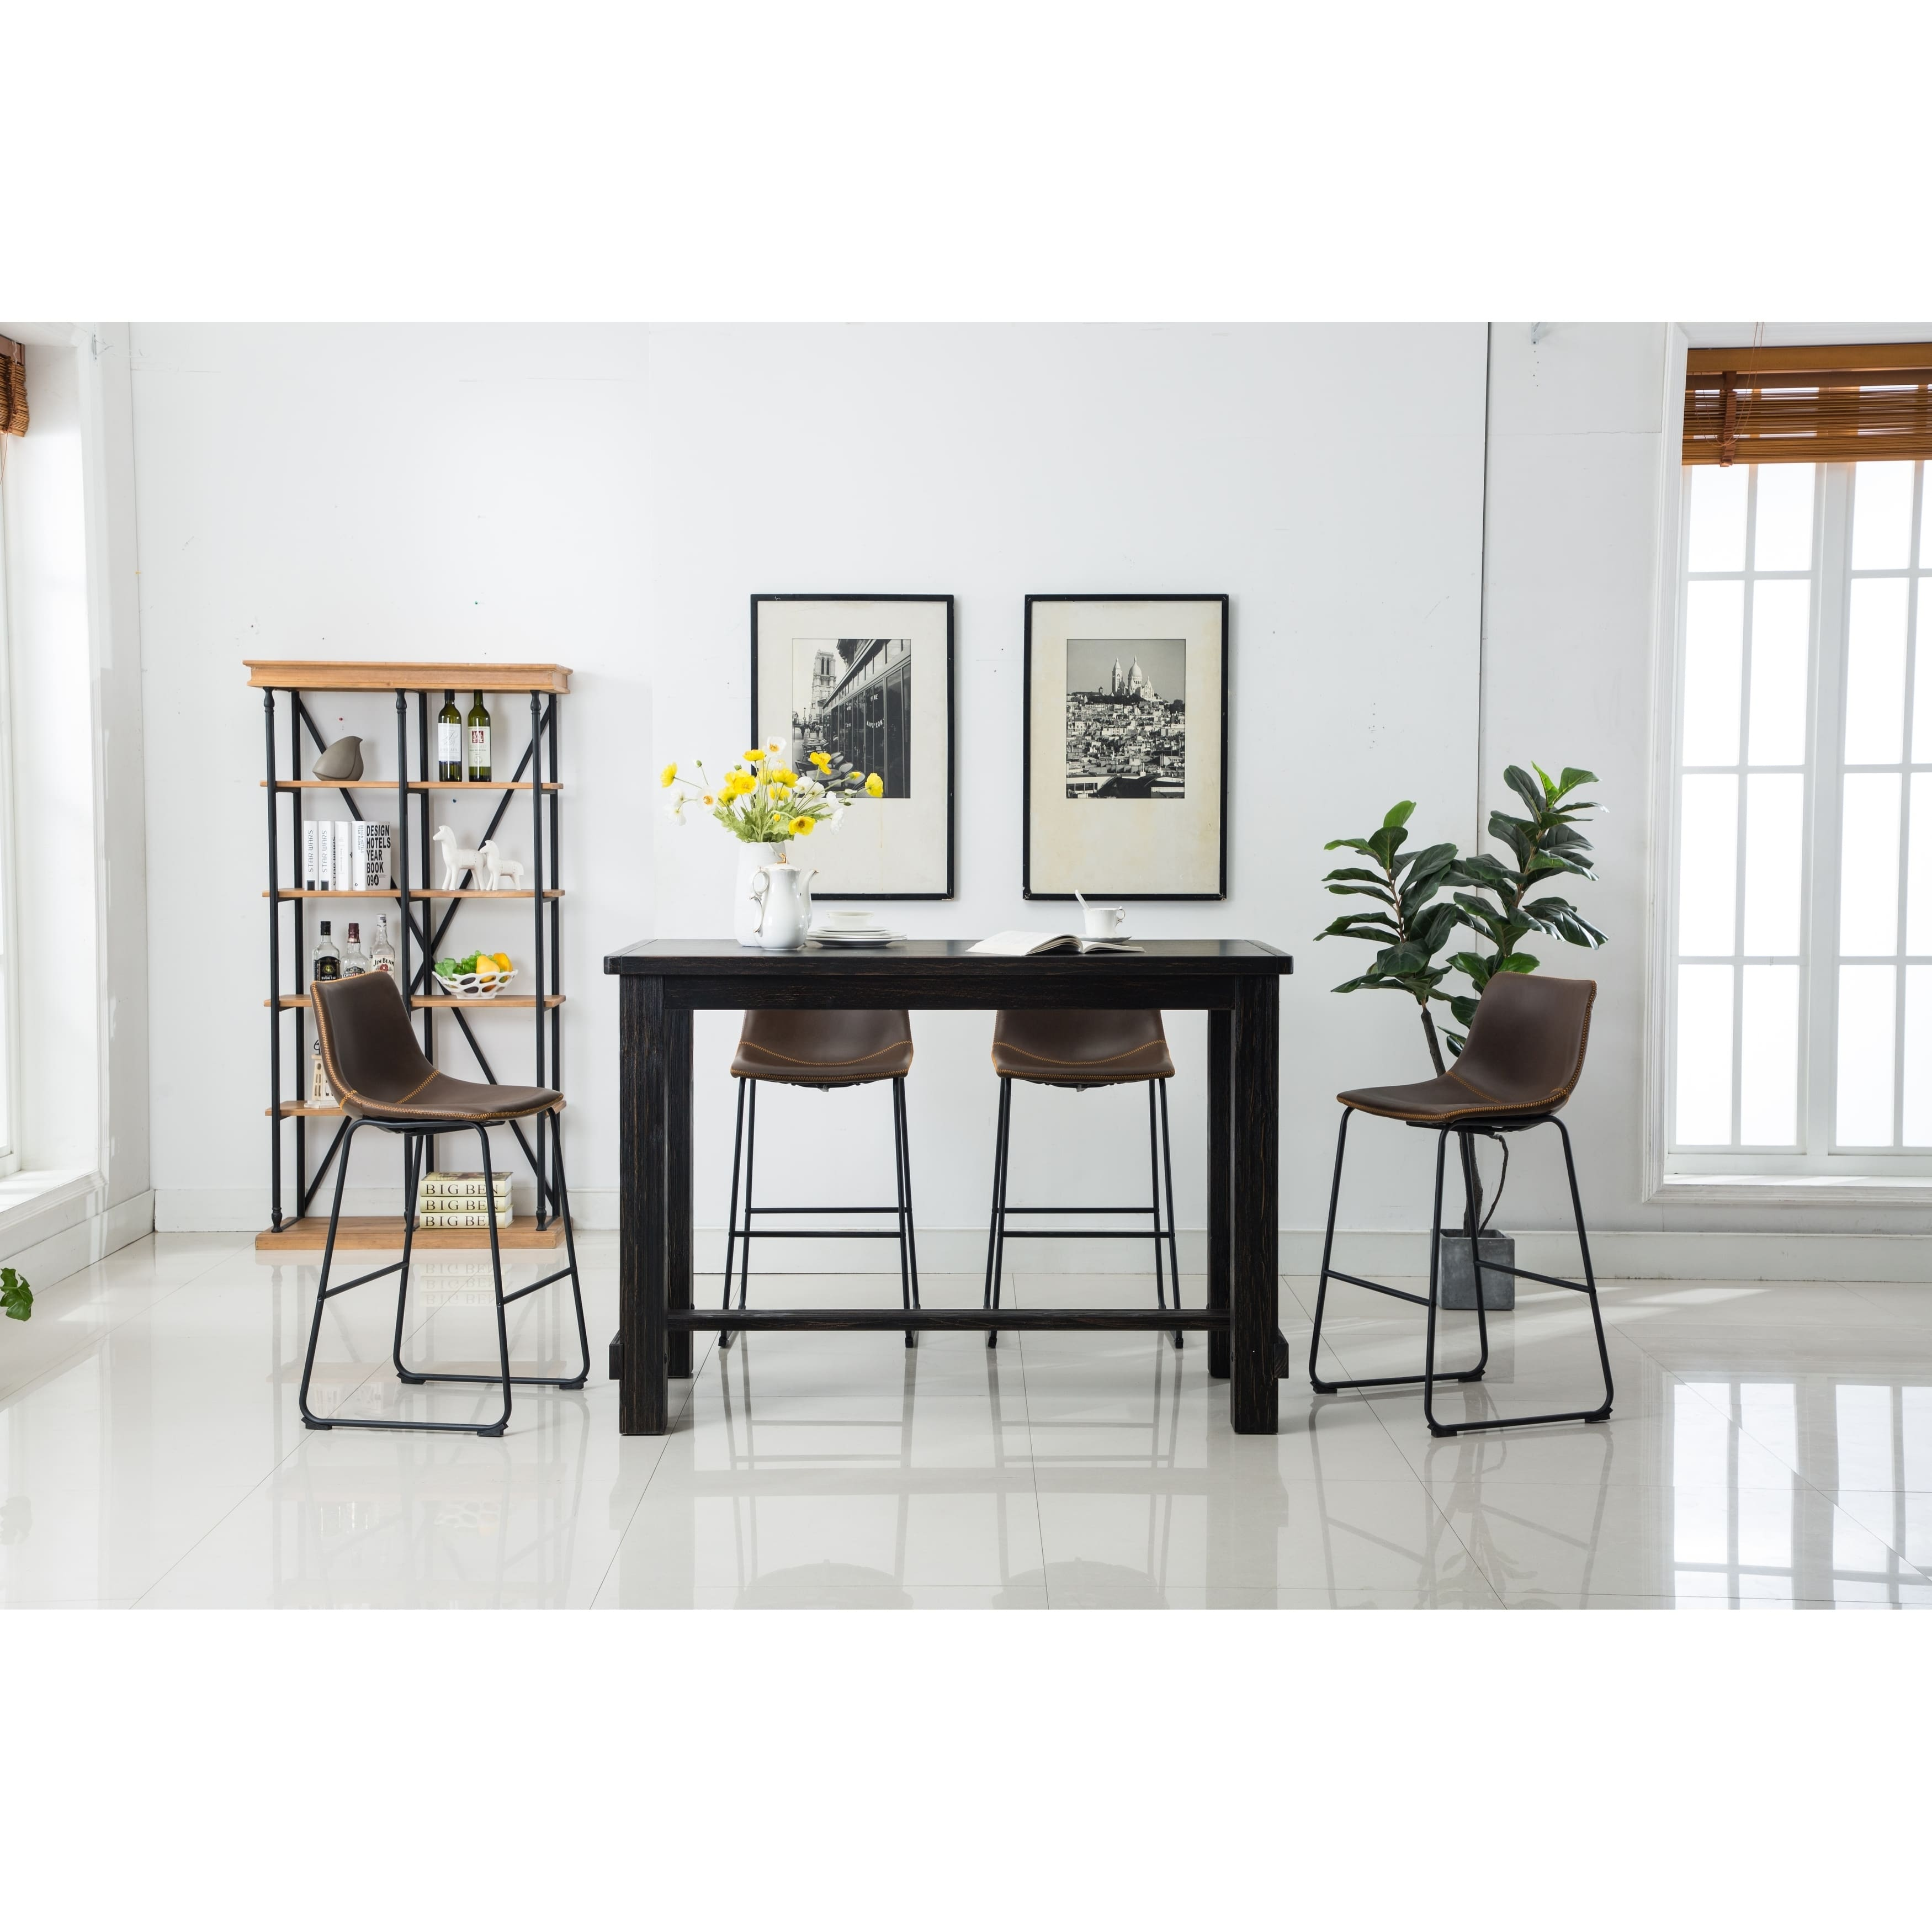 Dining Table Sets Deals: Buy Bar & Pub Table Sets Online At Overstock